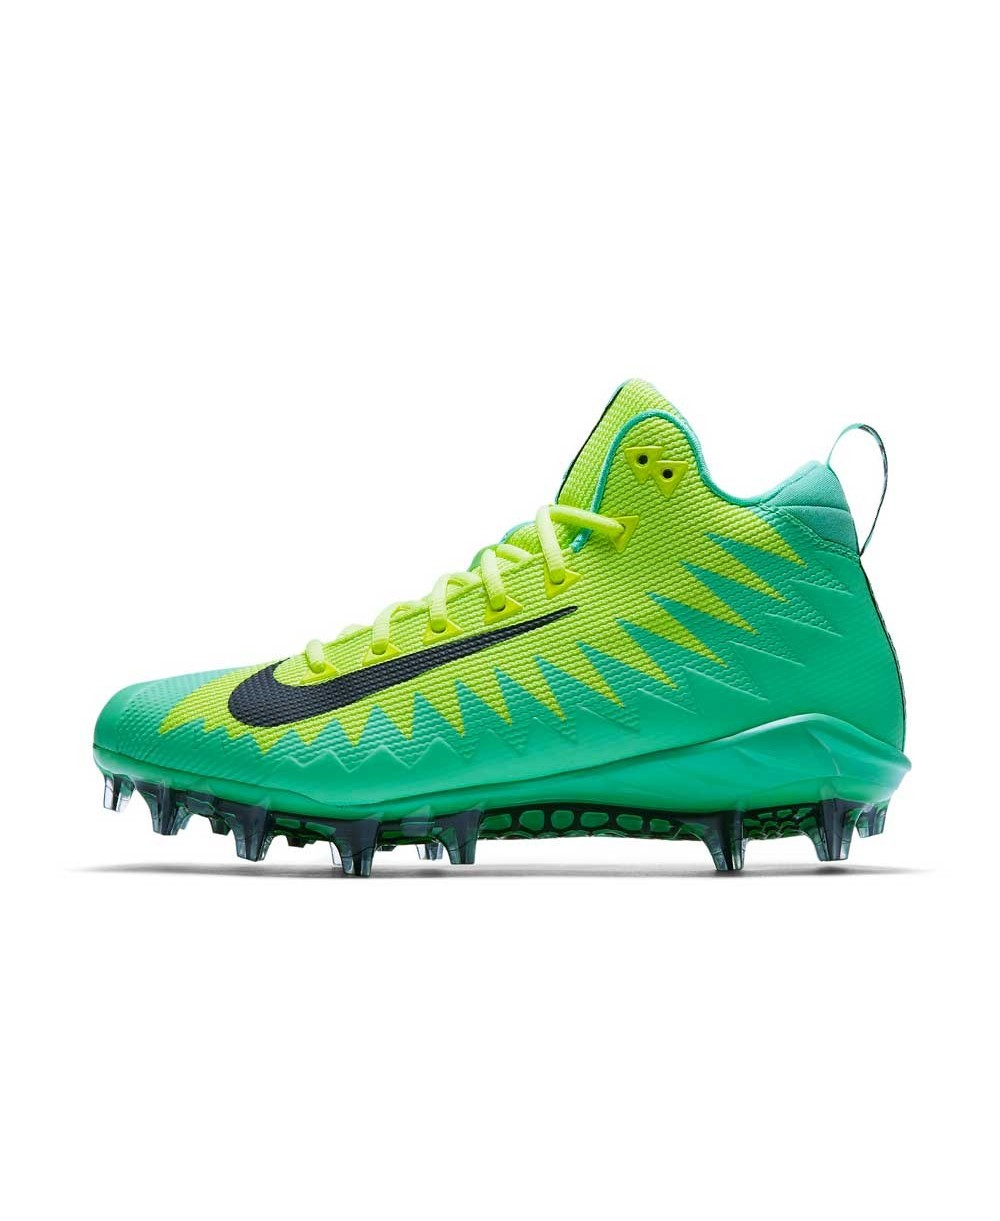 Mid À Menace Chaussure Pro By Football Crampons 2 You Nike